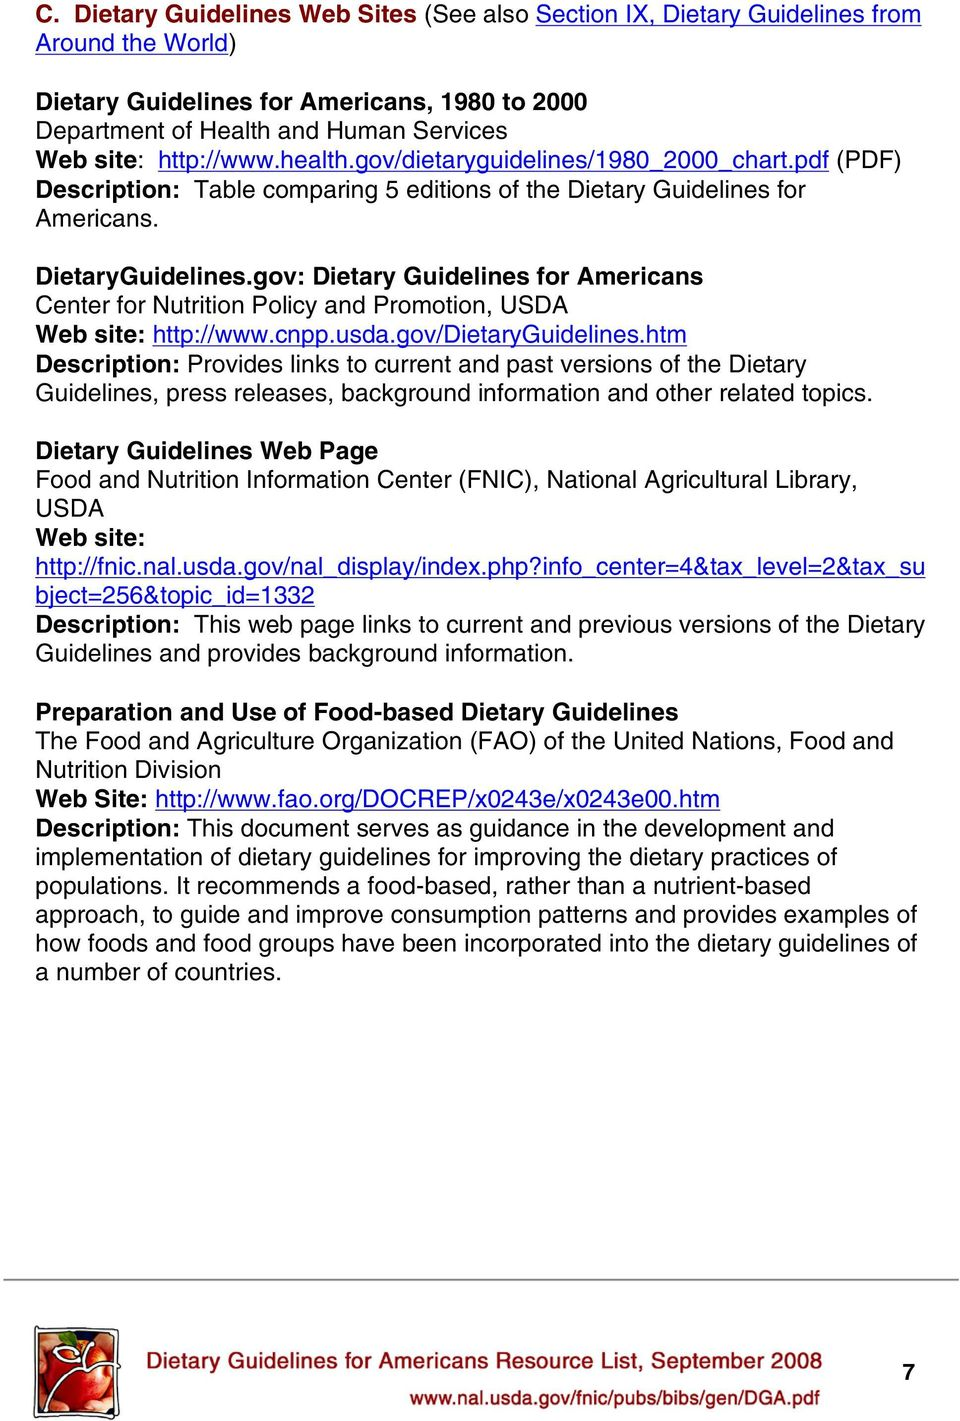 gov: Dietary Guidelines for Americans Center for Nutrition Policy and Promotion, USDA Web site: http://www.cnpp.usda.gov/dietaryguidelines.